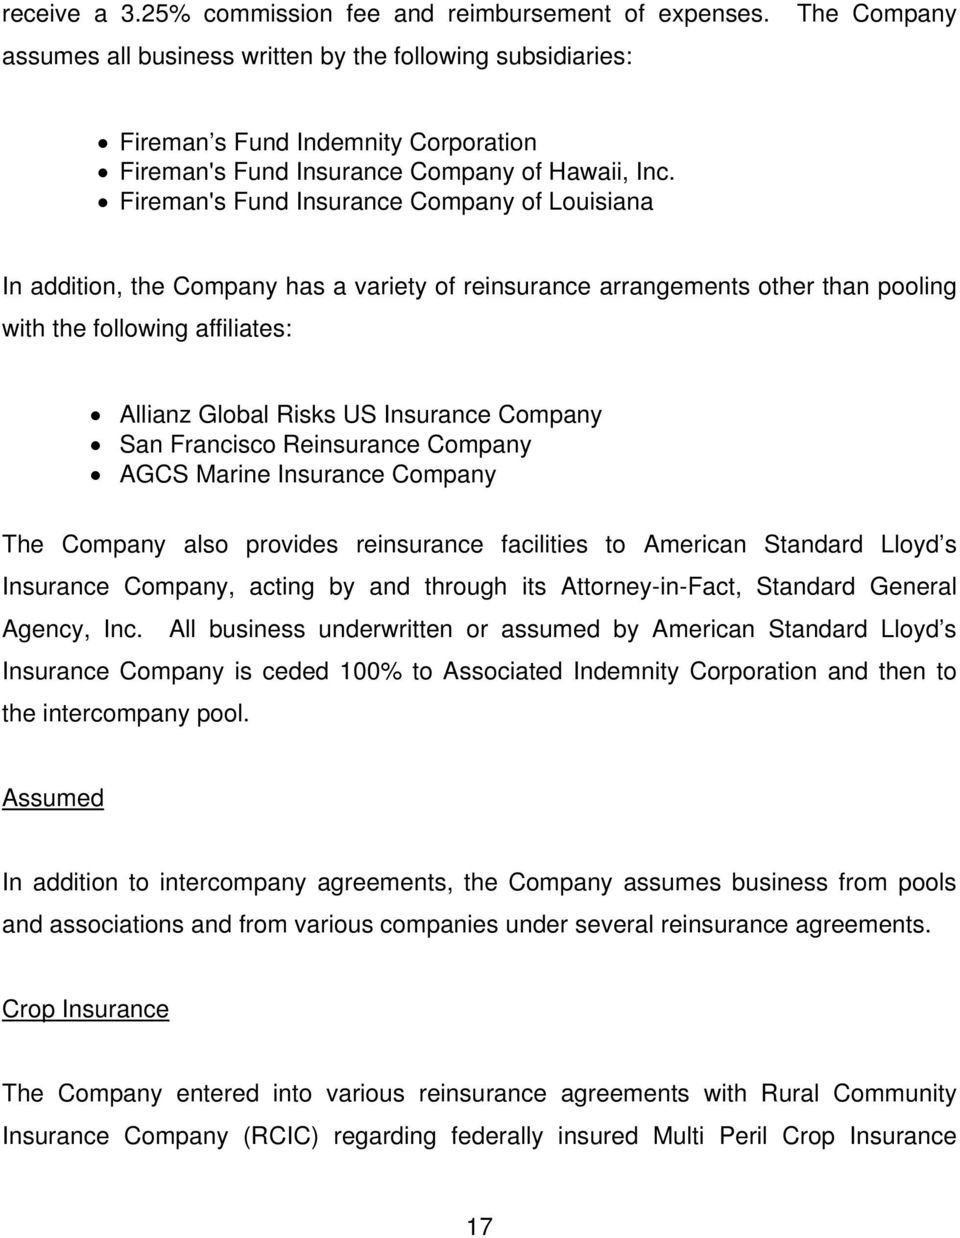 Fireman's Fund Insurance Company of Louisiana In addition, the Company has a variety of reinsurance arrangements other than pooling with the following affiliates: Allianz Global Risks US Insurance